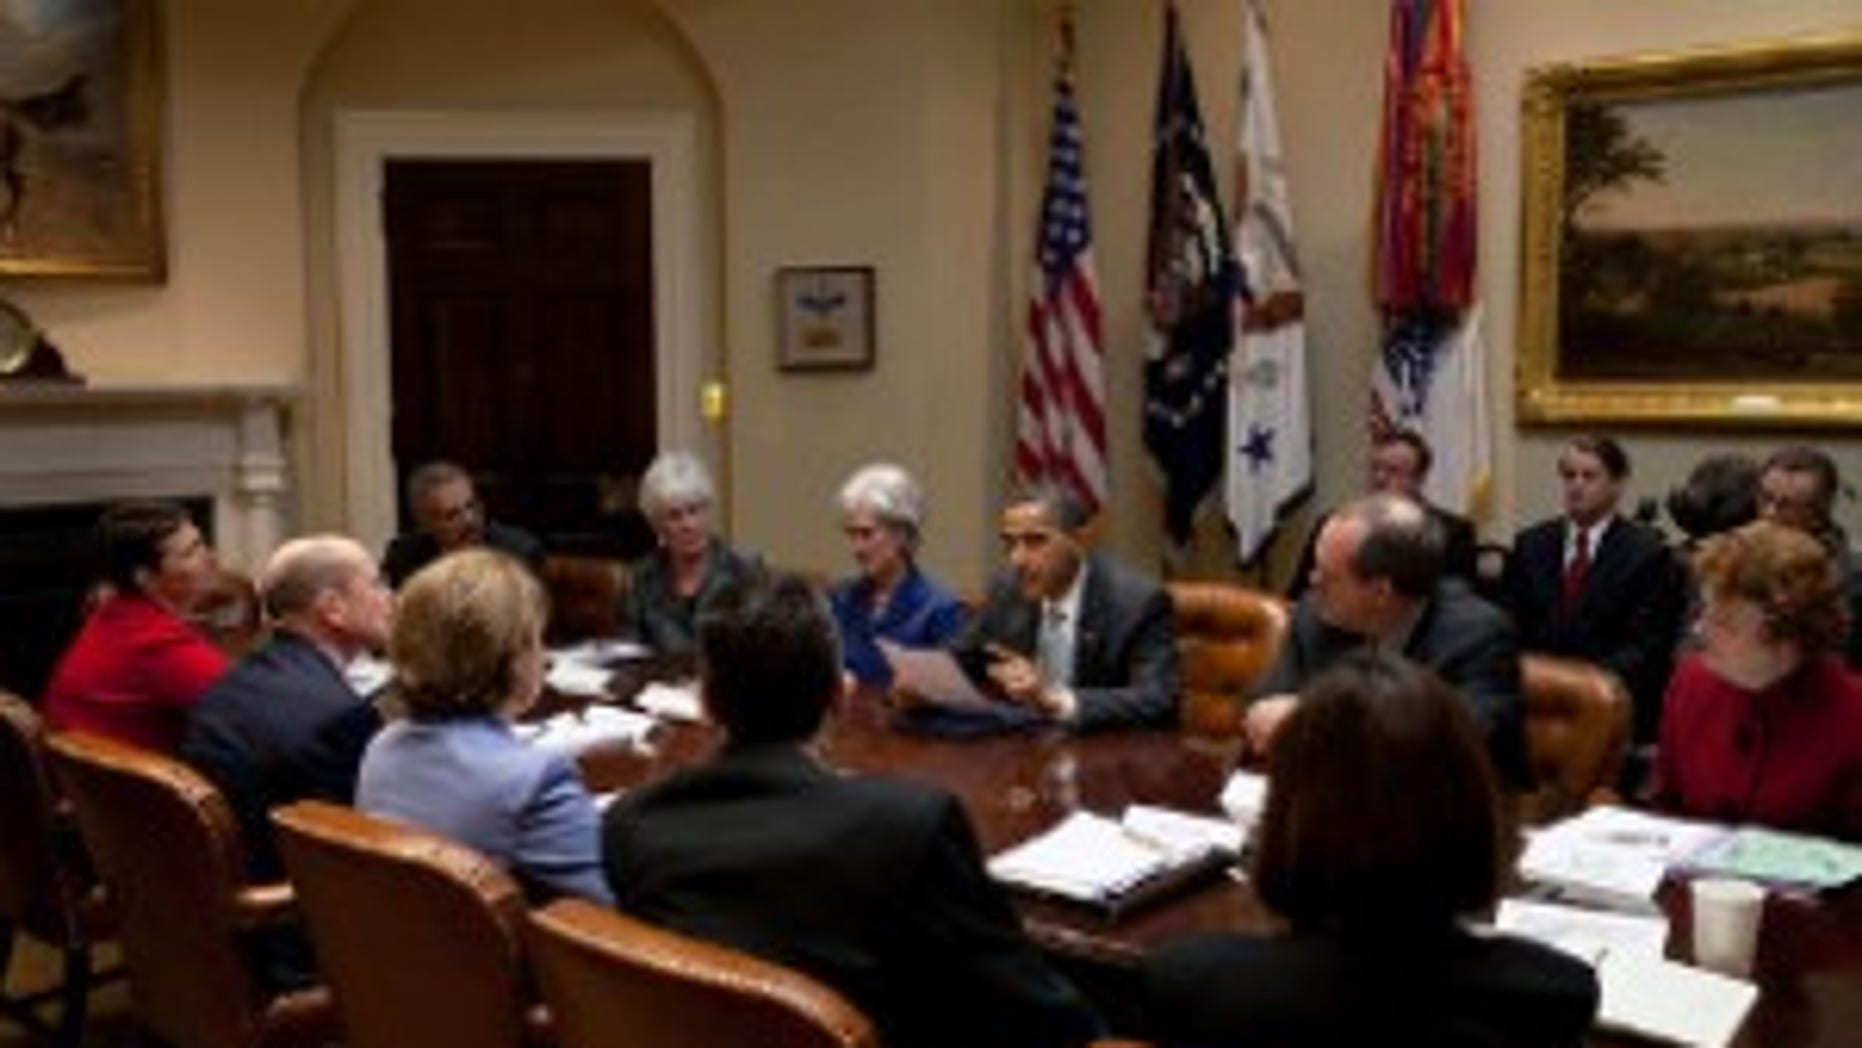 PresidentObama reads Natoma Canfield's letter to insurance executives, March 4th. White House Photo